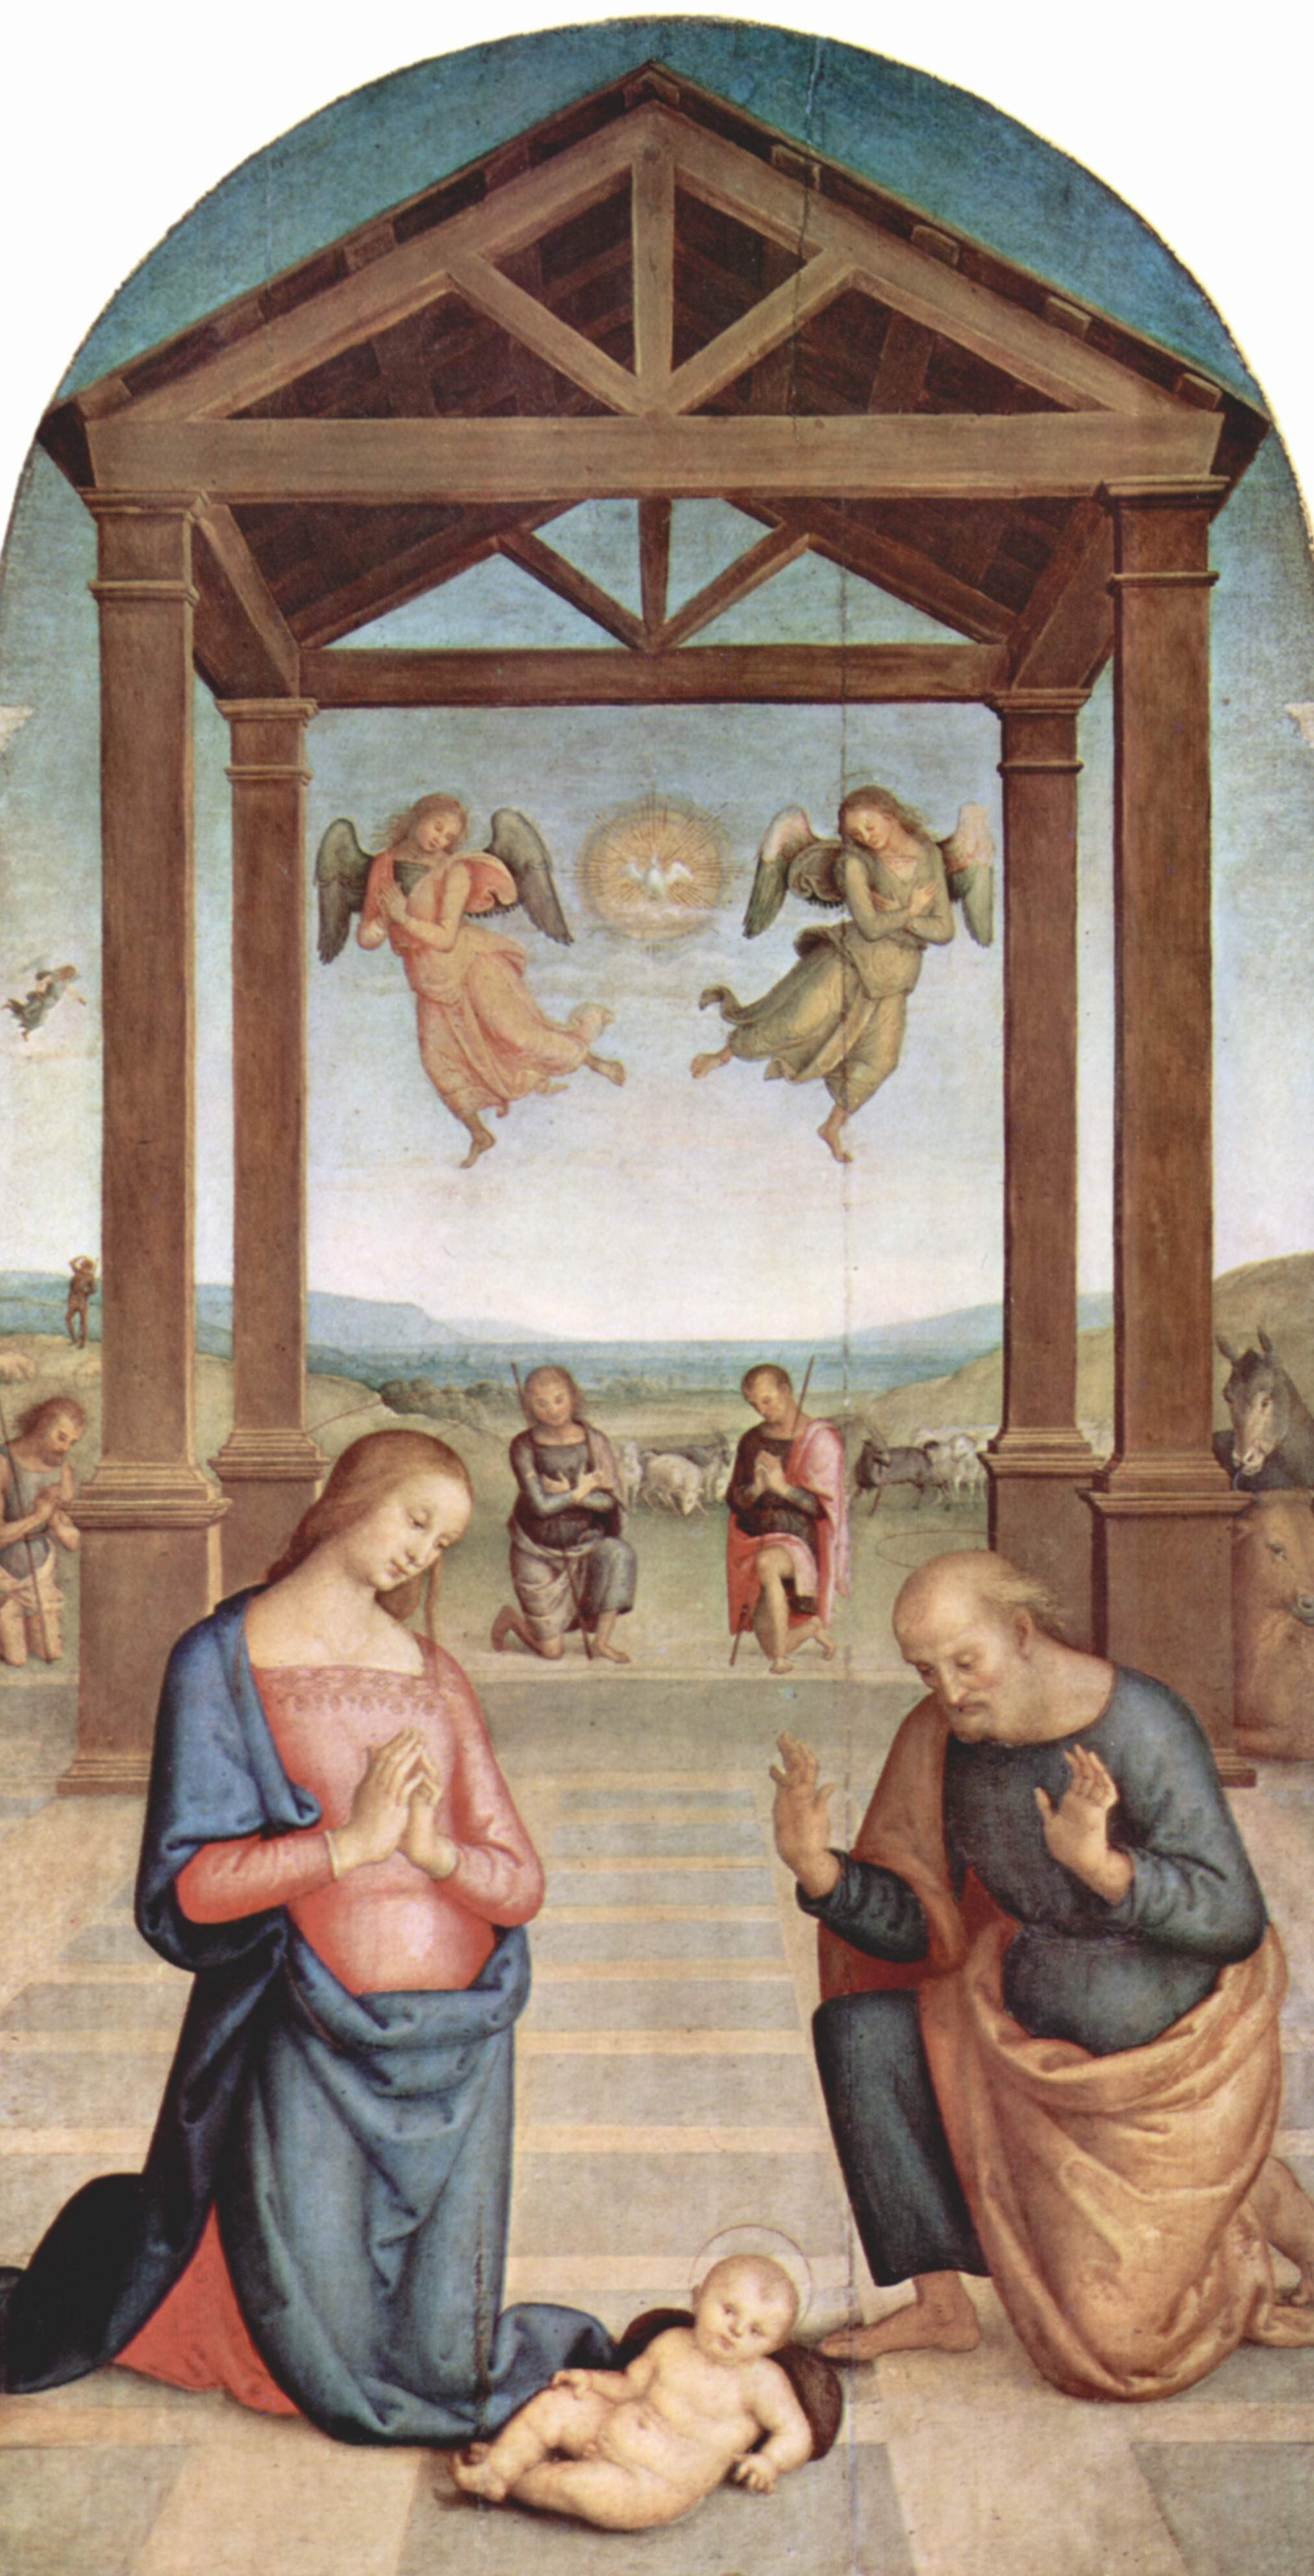 Pietro Perugino. Altar of St. Augustine. The adoration of the shepherds